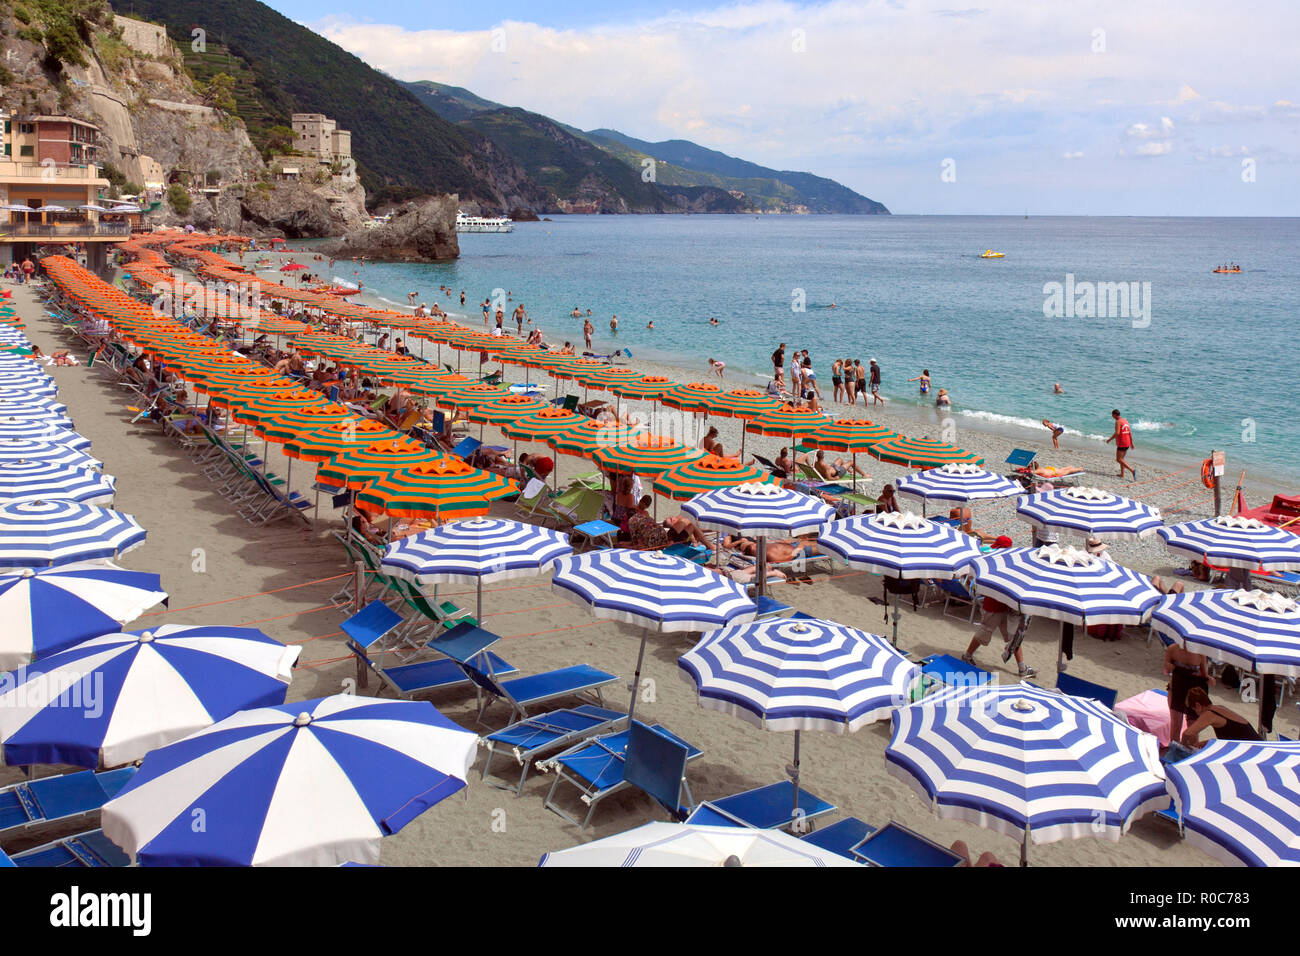 A study in orange and green umbrellas. thie main beach in Monterosso is the largest in the Cinque Terre.  Monterosso al Mare is a town and comune in t - Stock Image